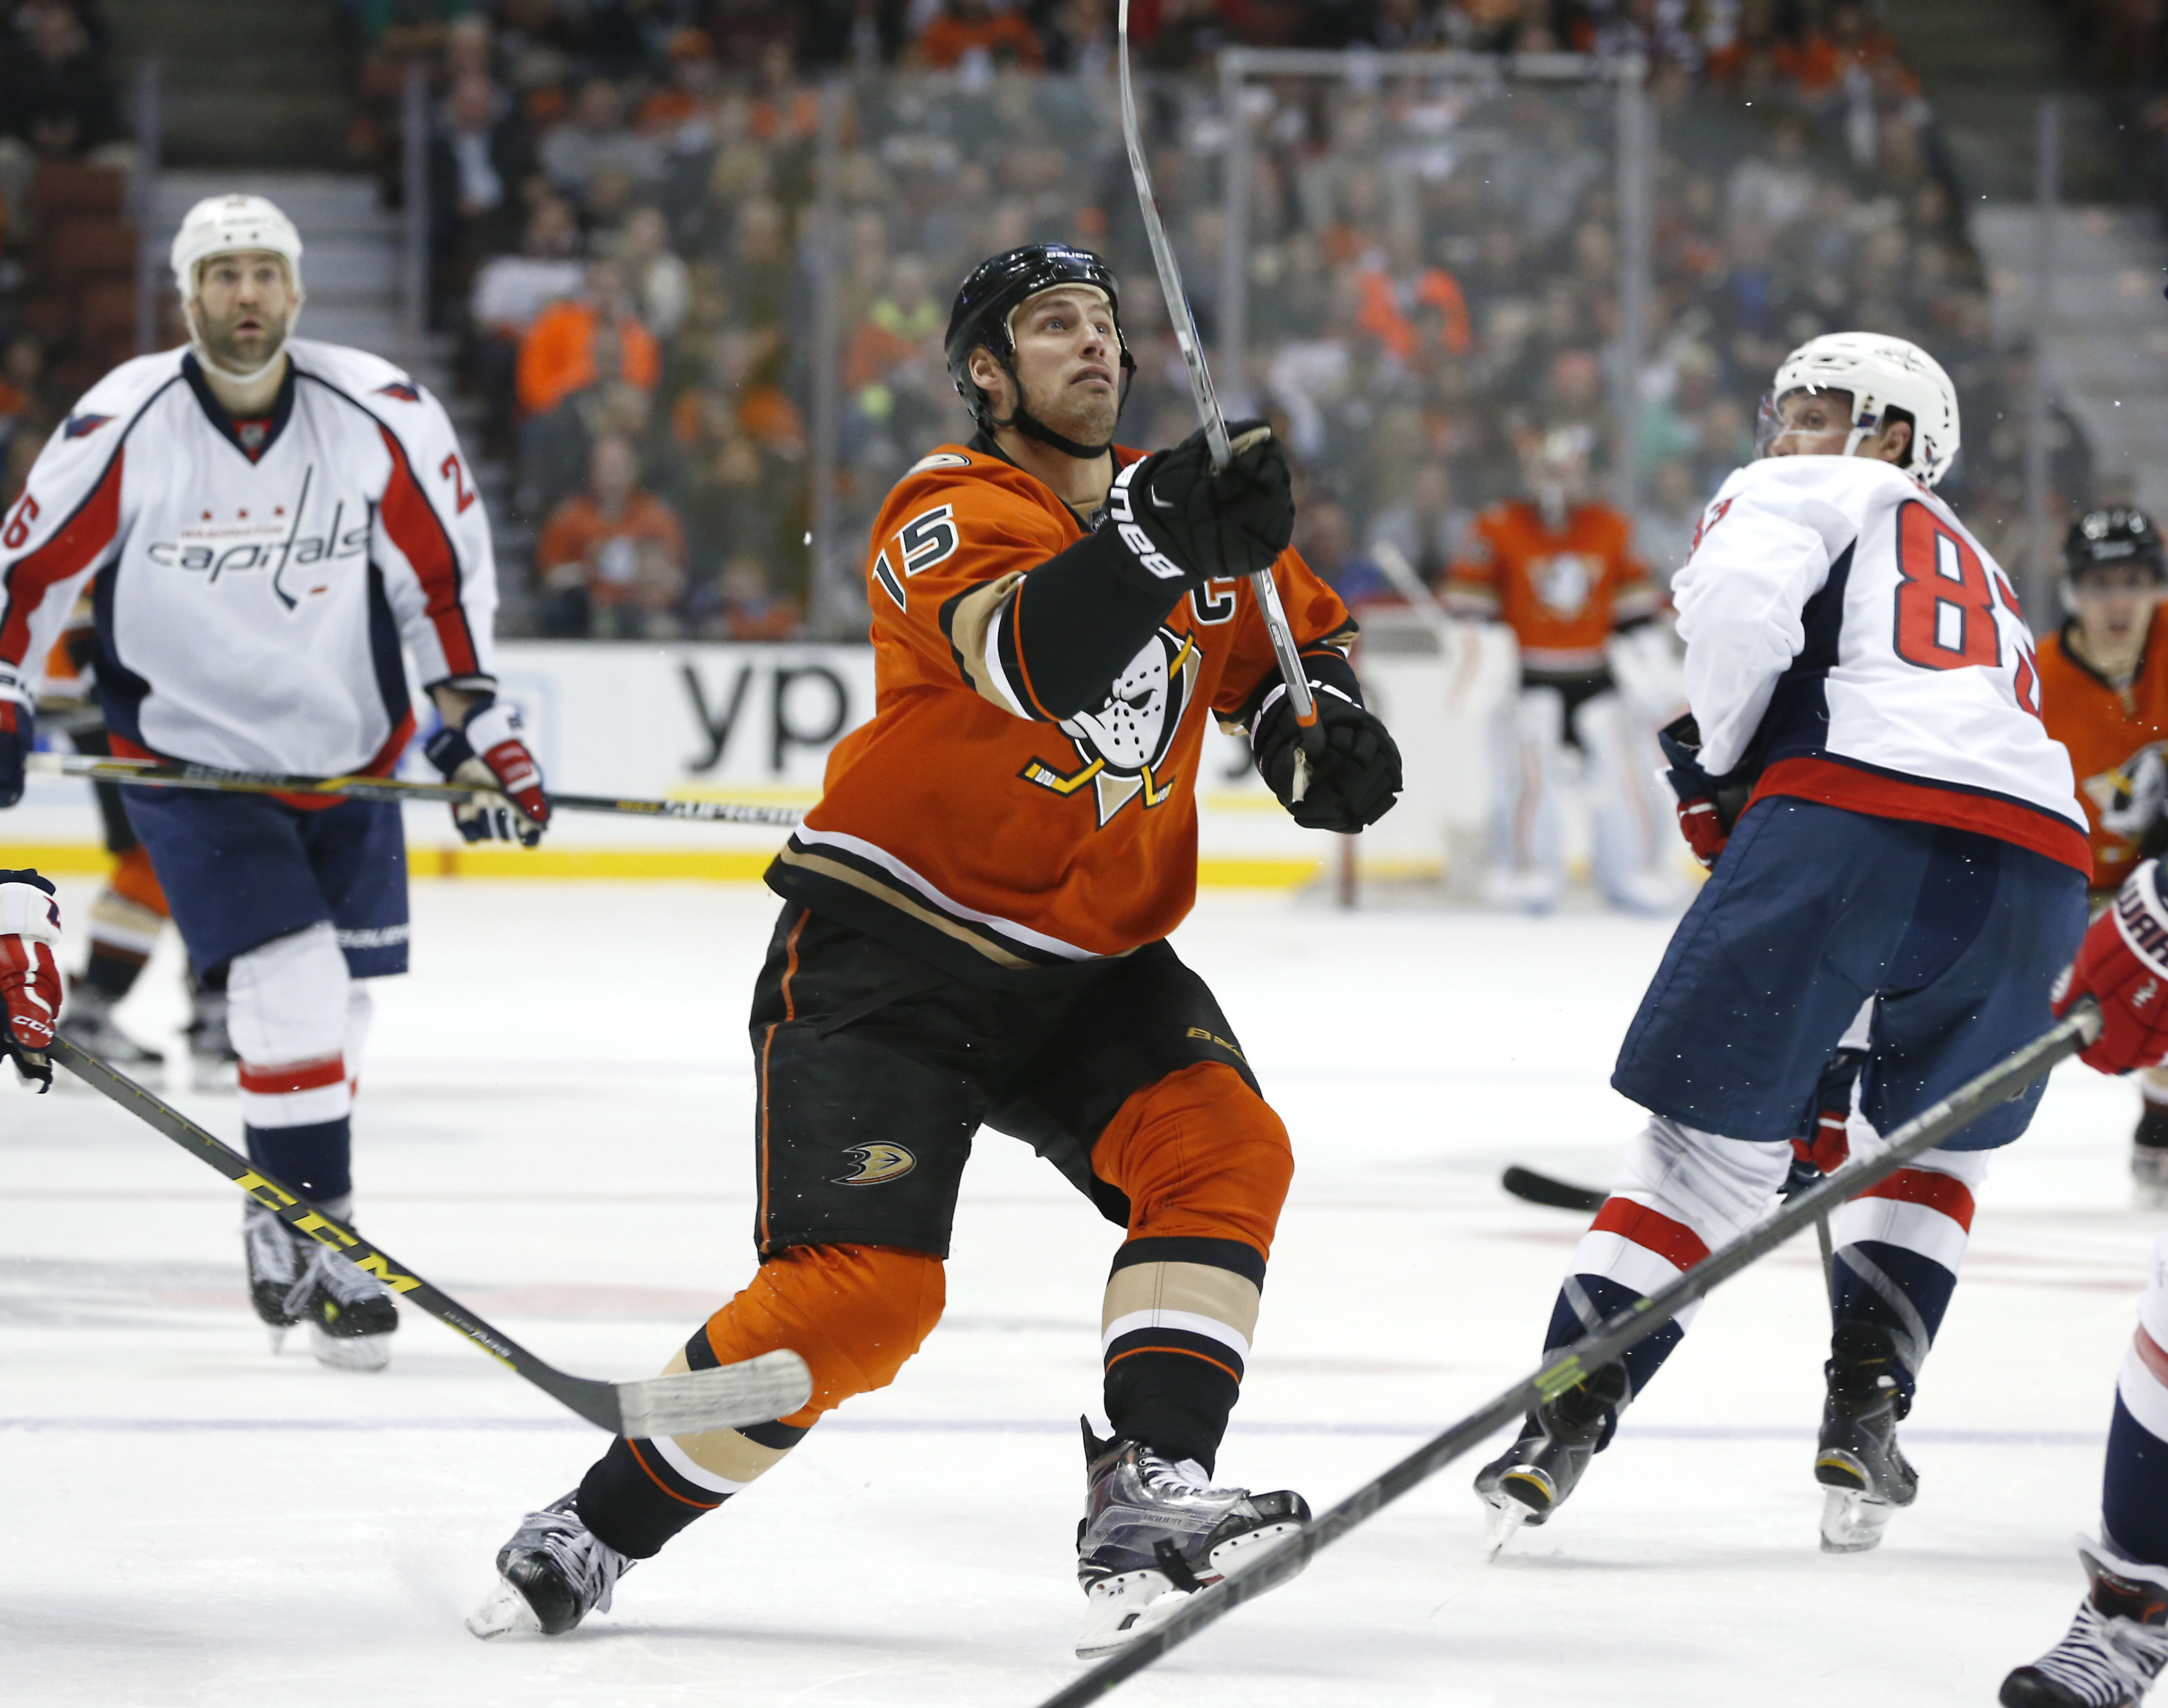 Anaheim Ducks' Ryan Getzlaf (15) reaches for the puck as Washington Capitals center Jay Beagle, right, looks on in the second period of an NHL hockey game in Anaheim, Calif., Monday, March 7, 2016. (AP Photo/Christine Cotter)